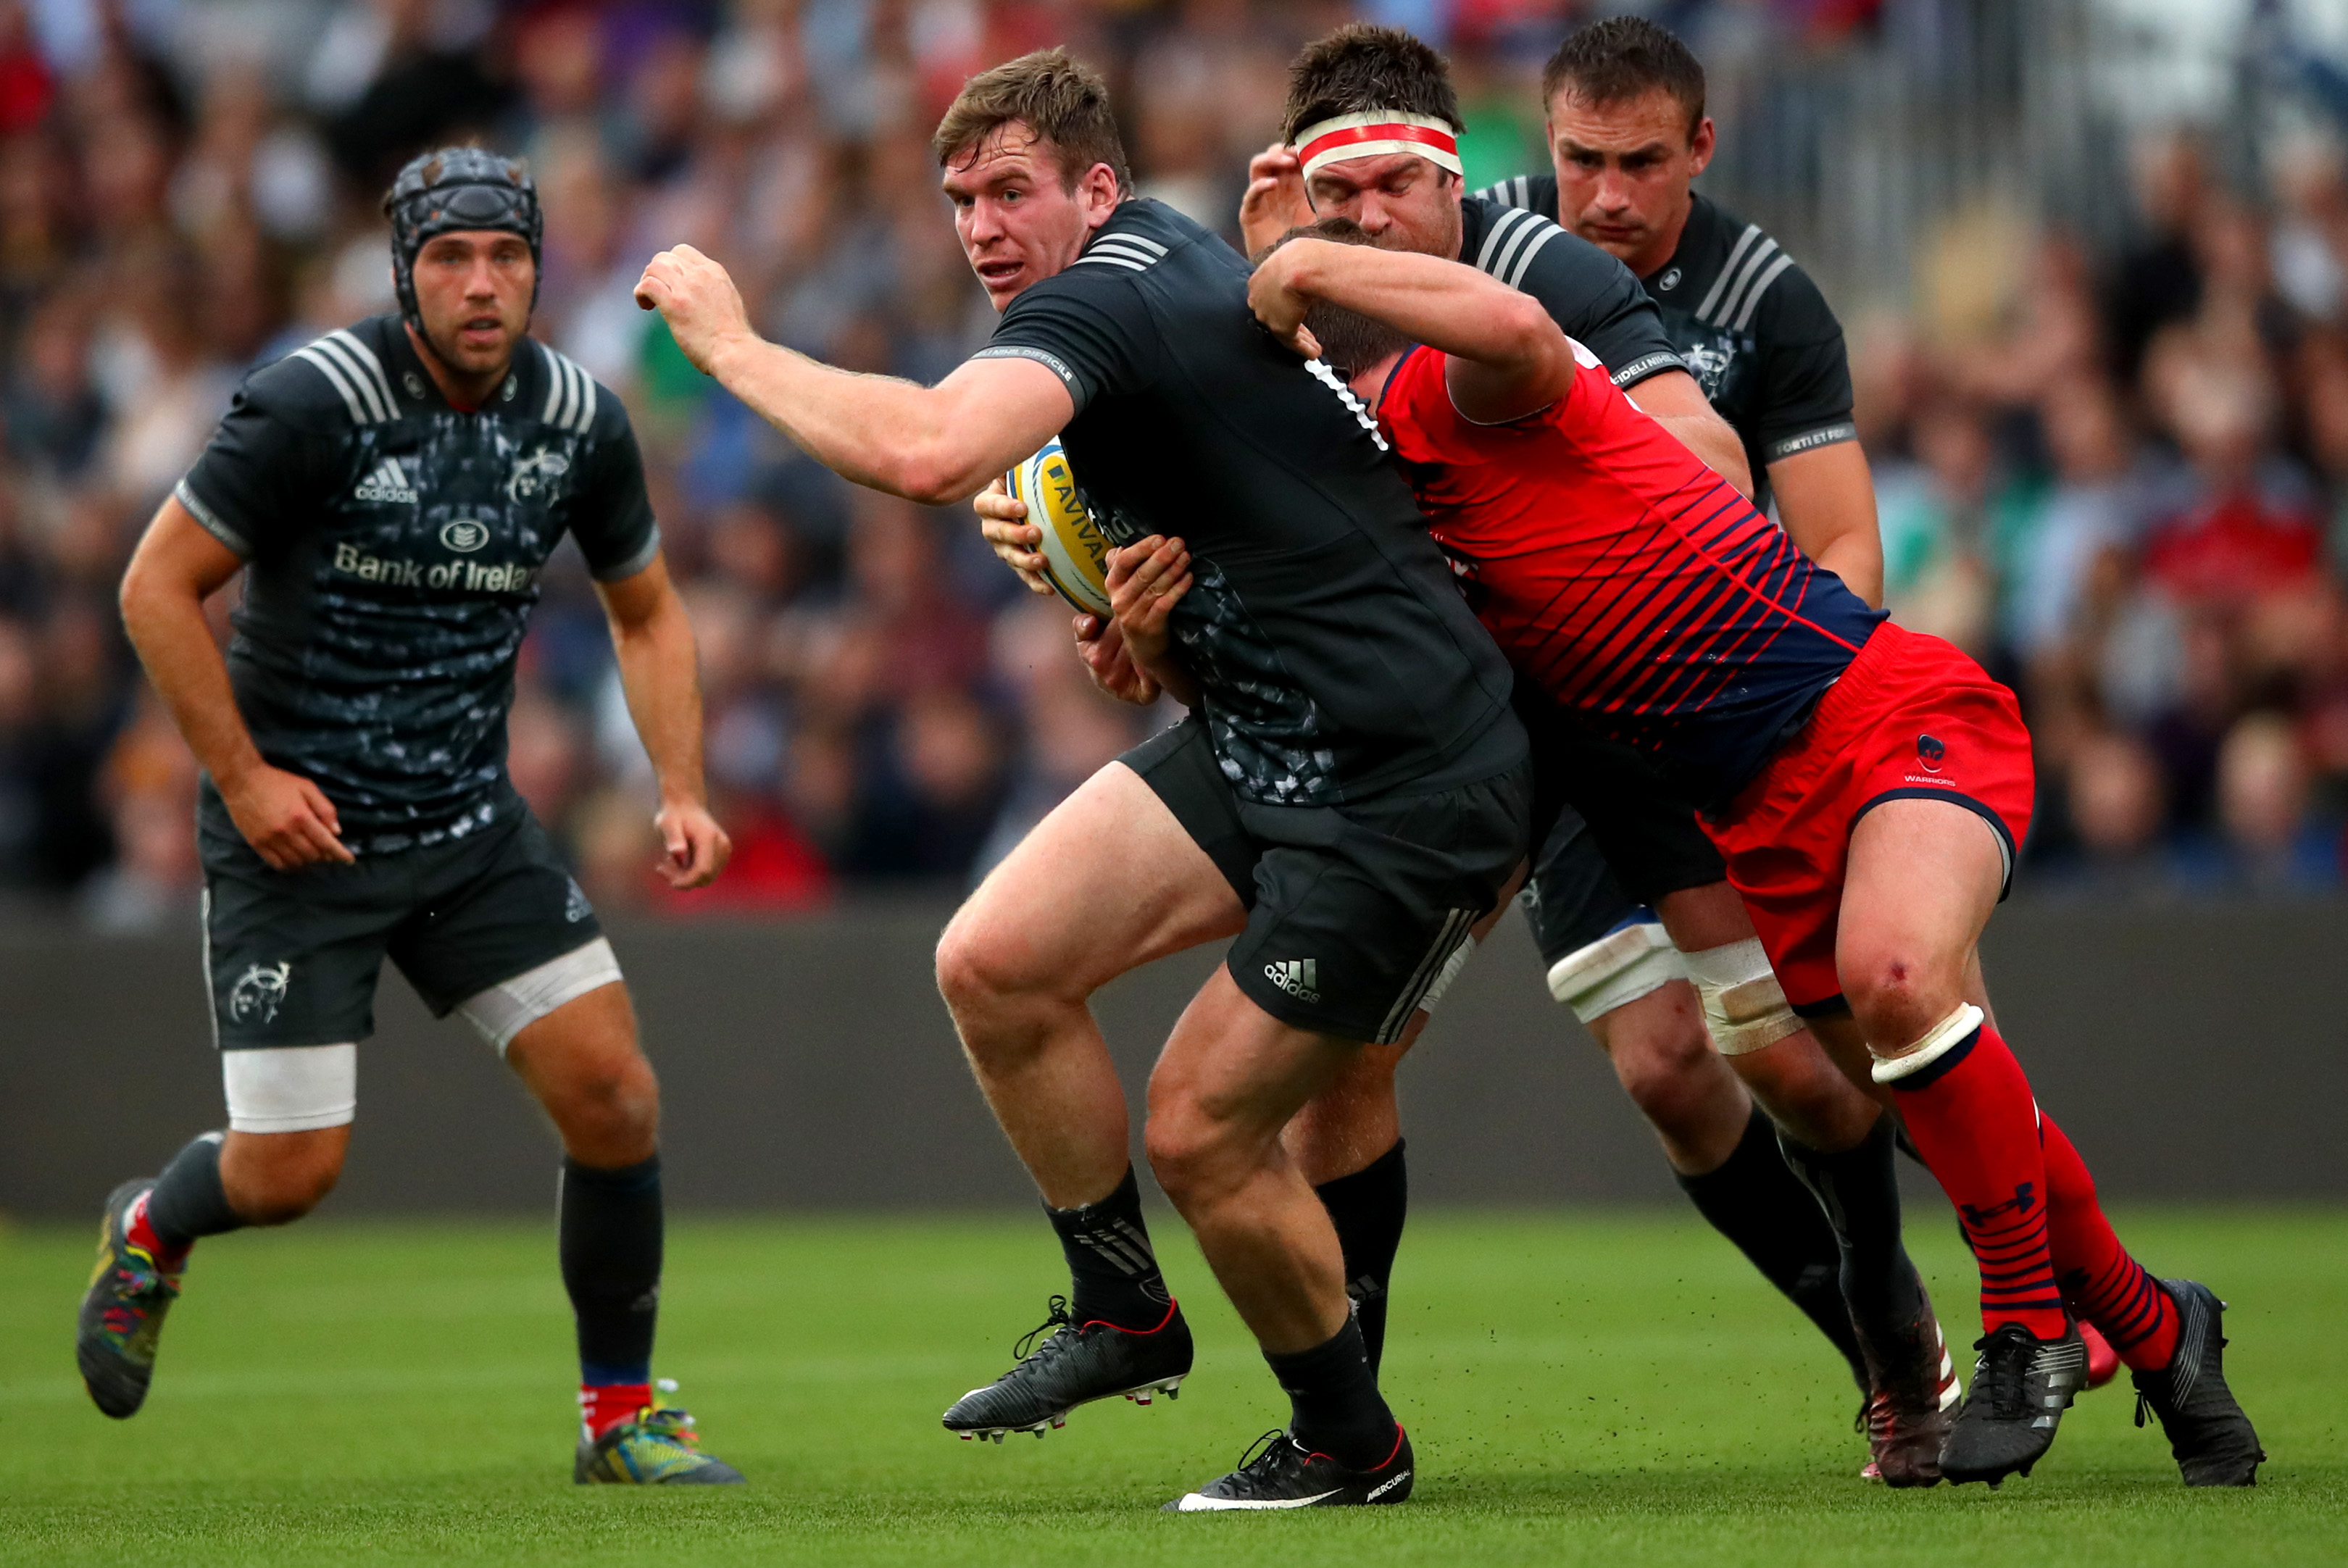 Chris Farrell will make his competitive debut for Munster tomorrow night.